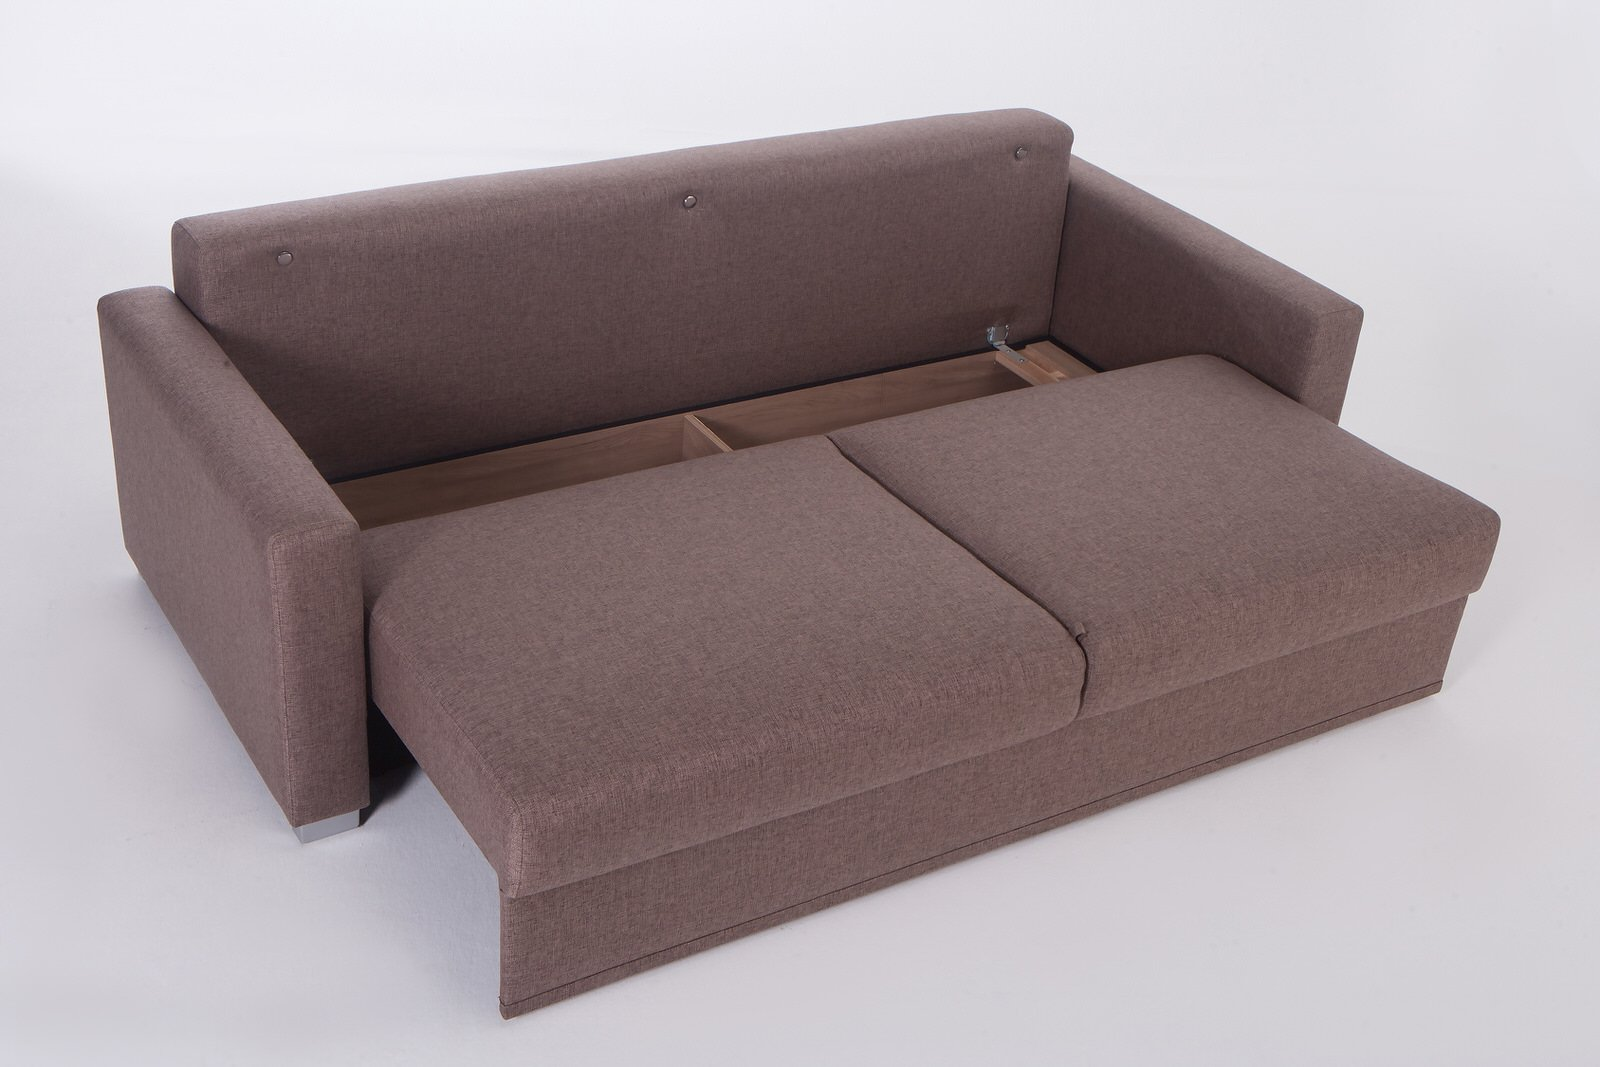 felix diego light brown convertible sofa bed by sunset FELDQSI